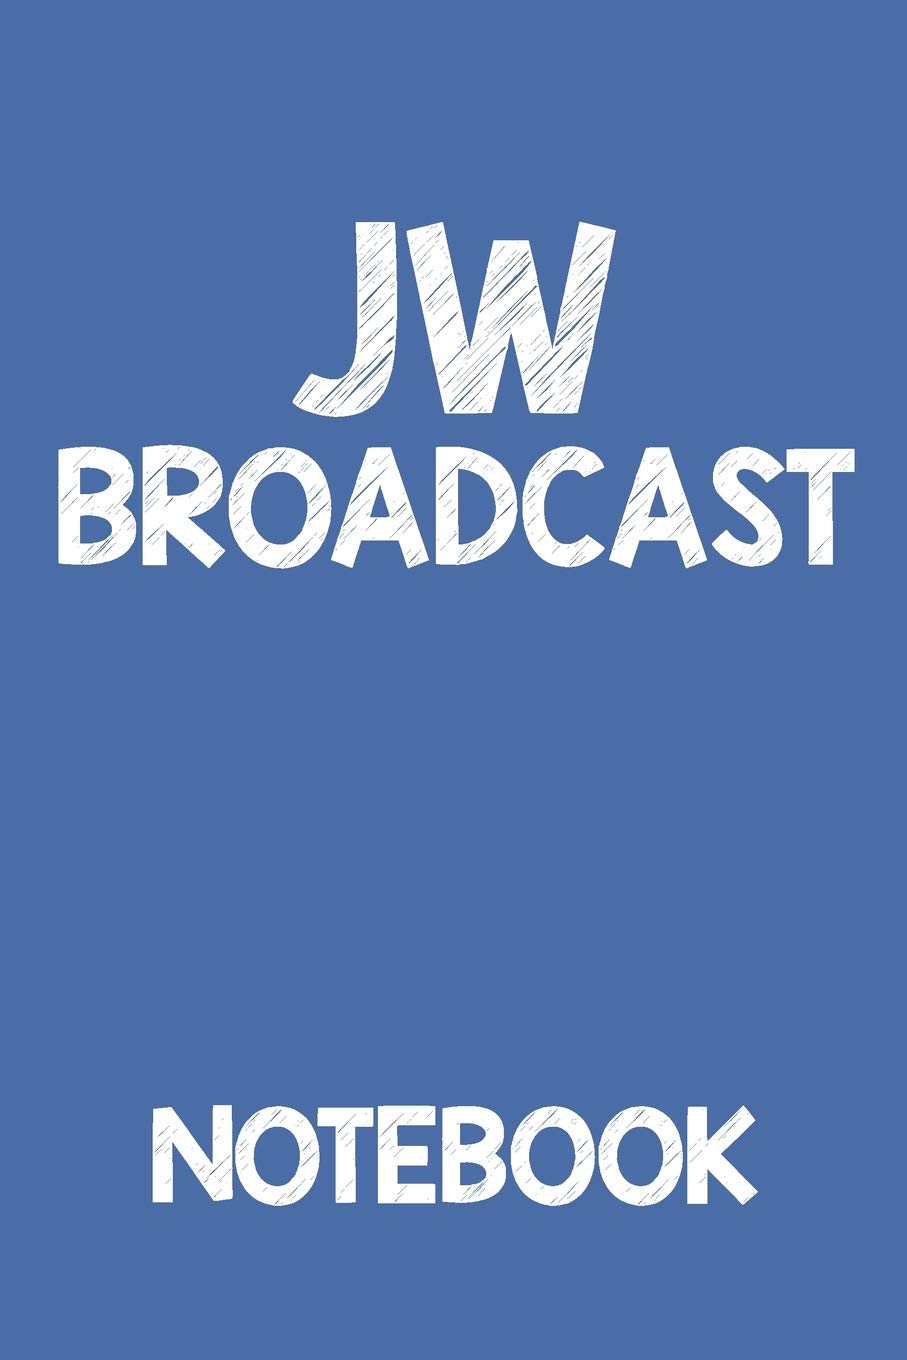 JW Broadcast Notebook: | Jehovah Witness Accessories Notebook